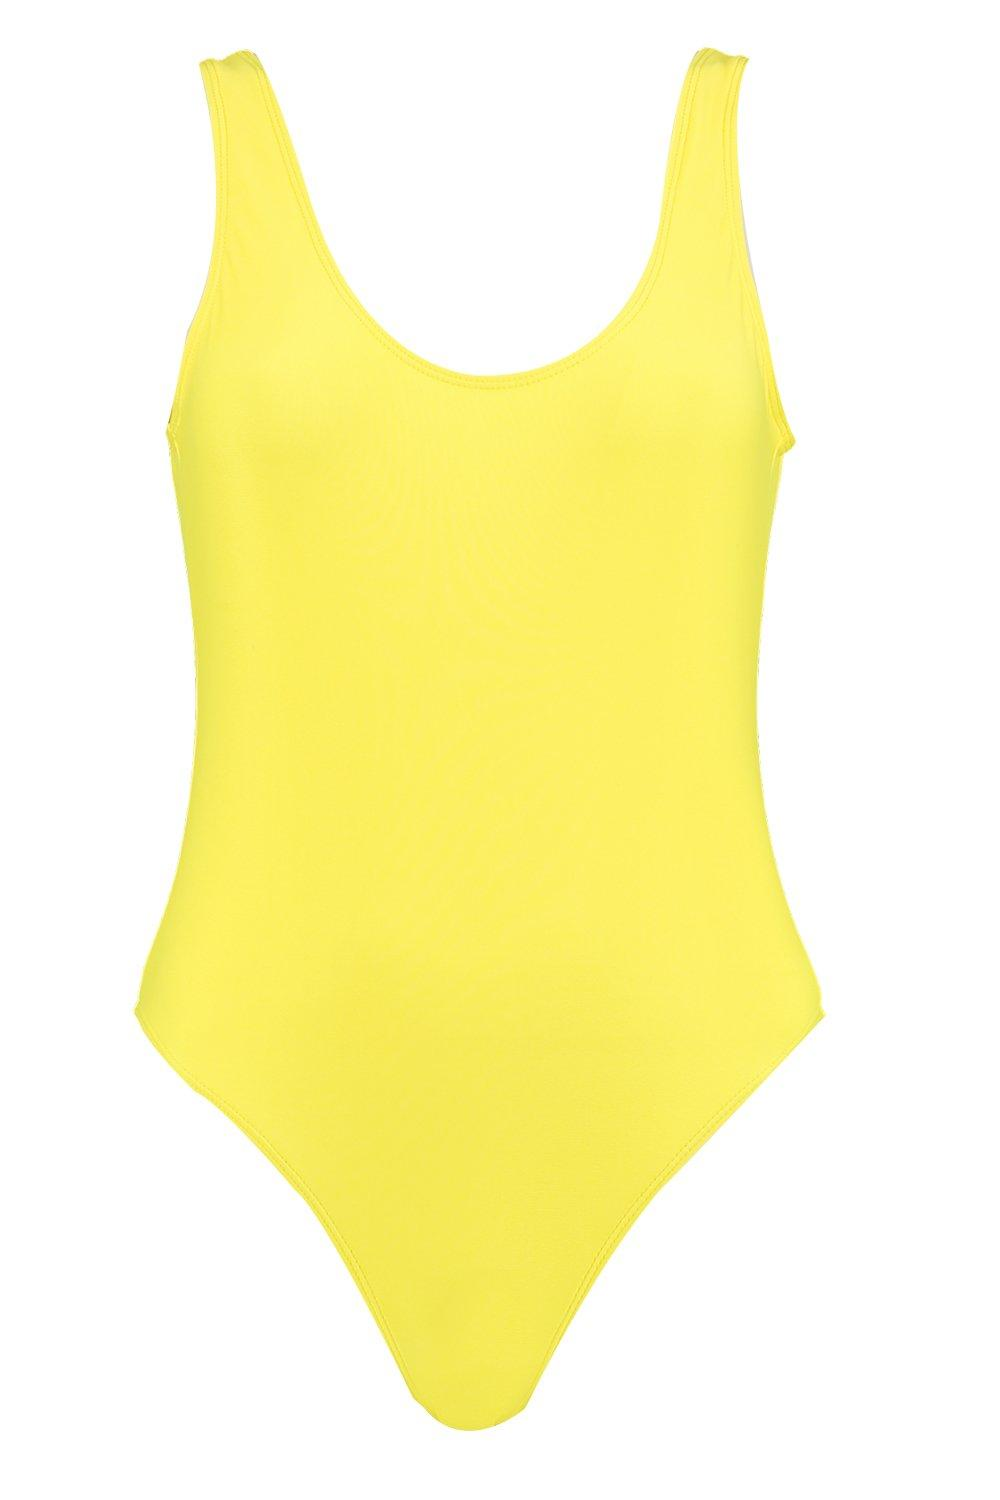 Swimsuit Scoop Scoop Scoop Back Swimsuit Back Scoop Swimsuit Back Back rrpwqz